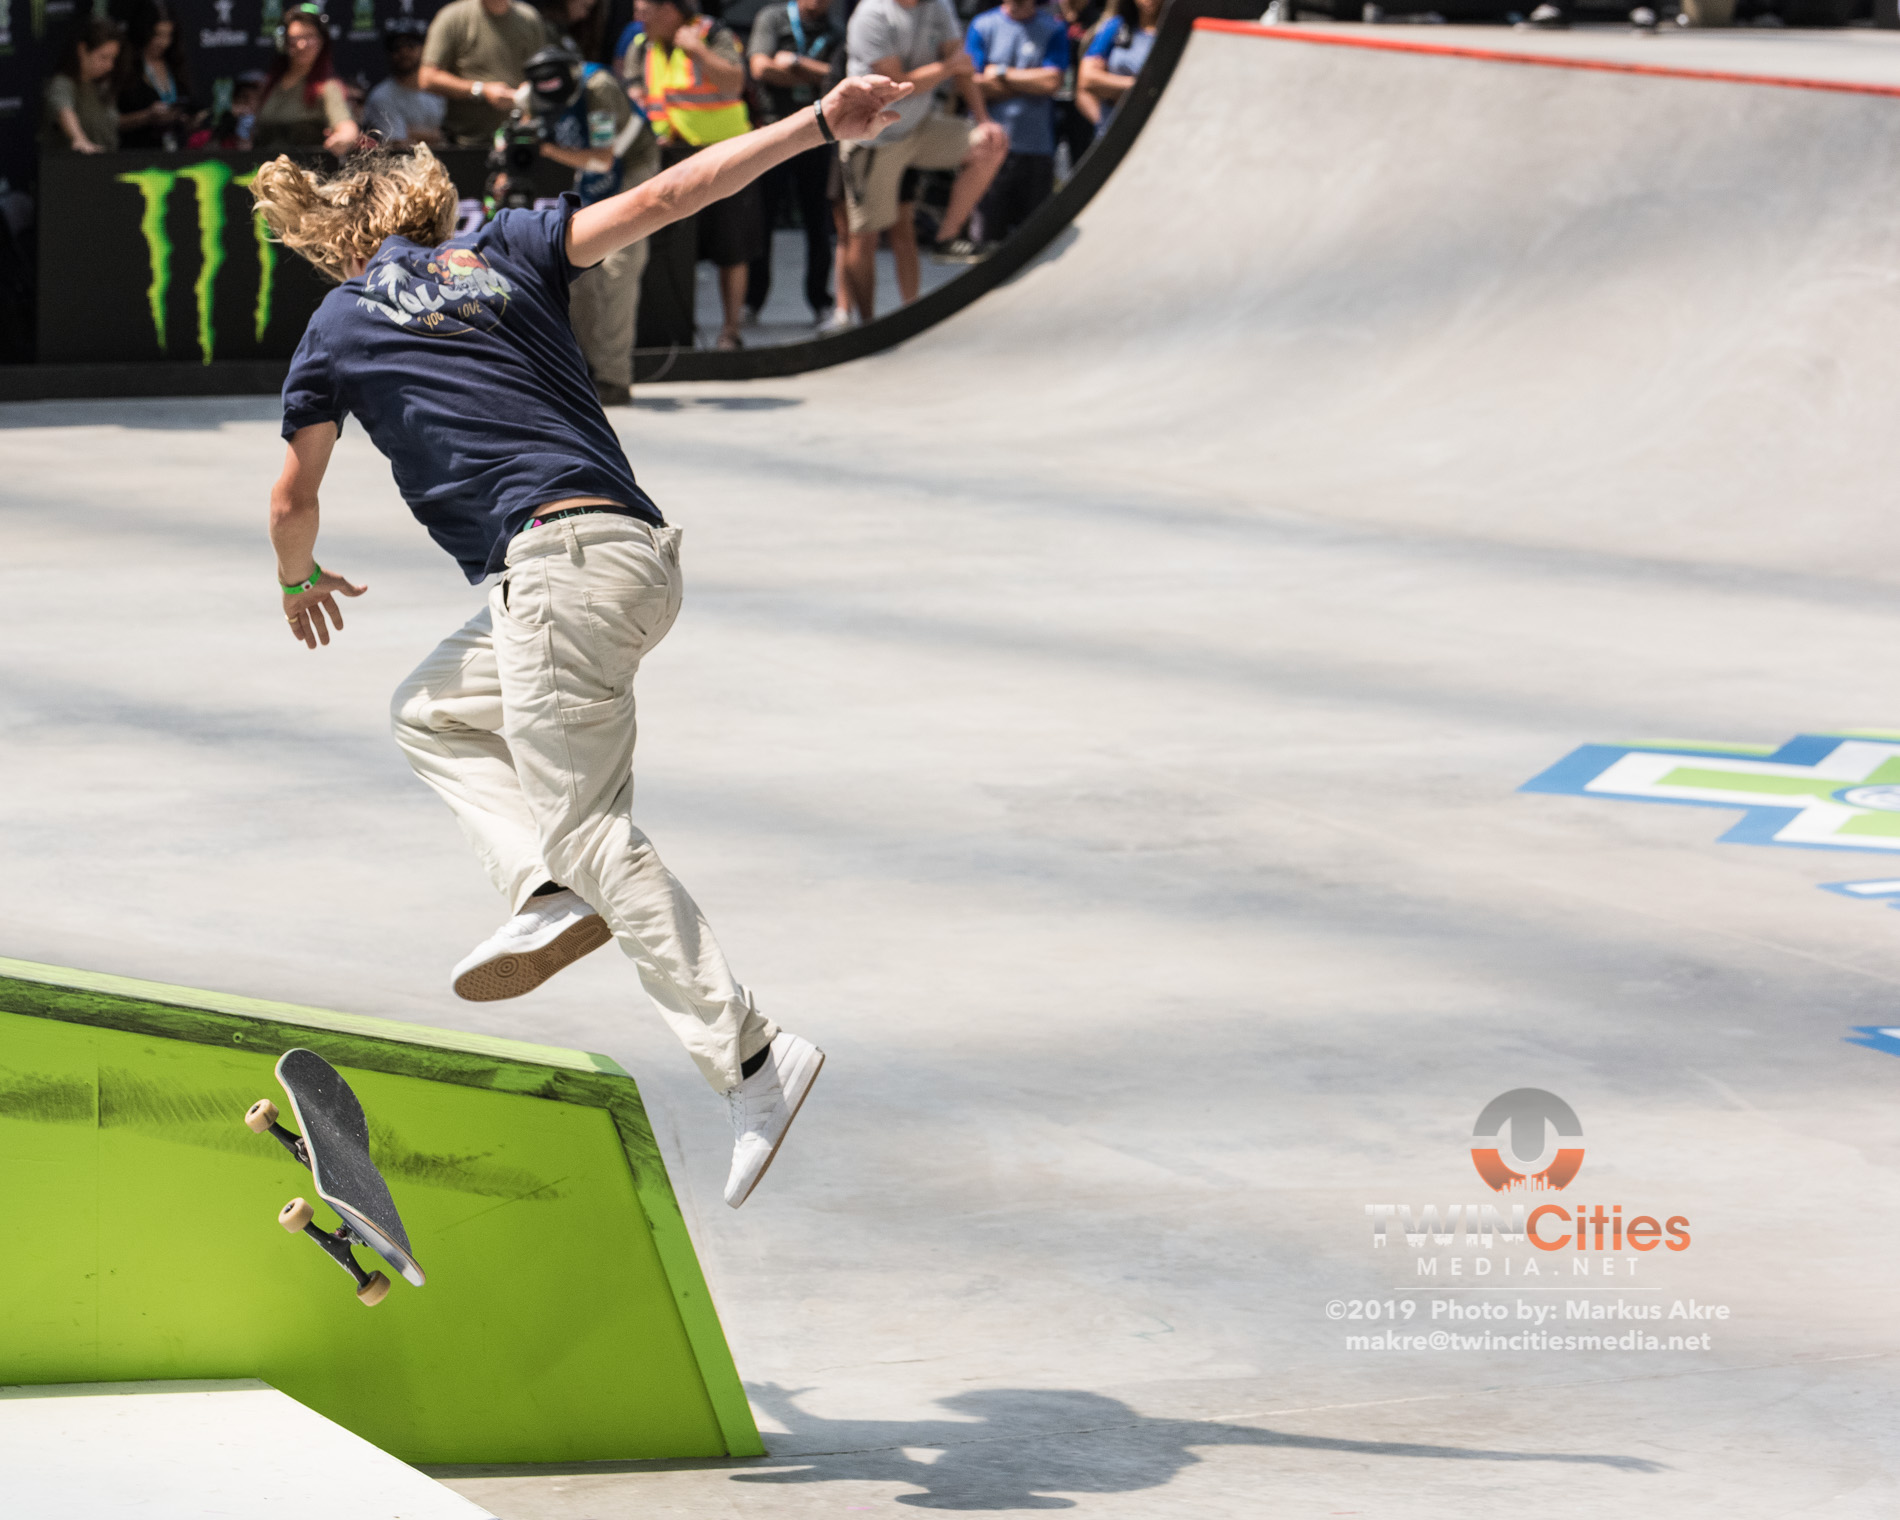 2019-X-Games-Day-4-Skateboard-Street-Best-Trick-2